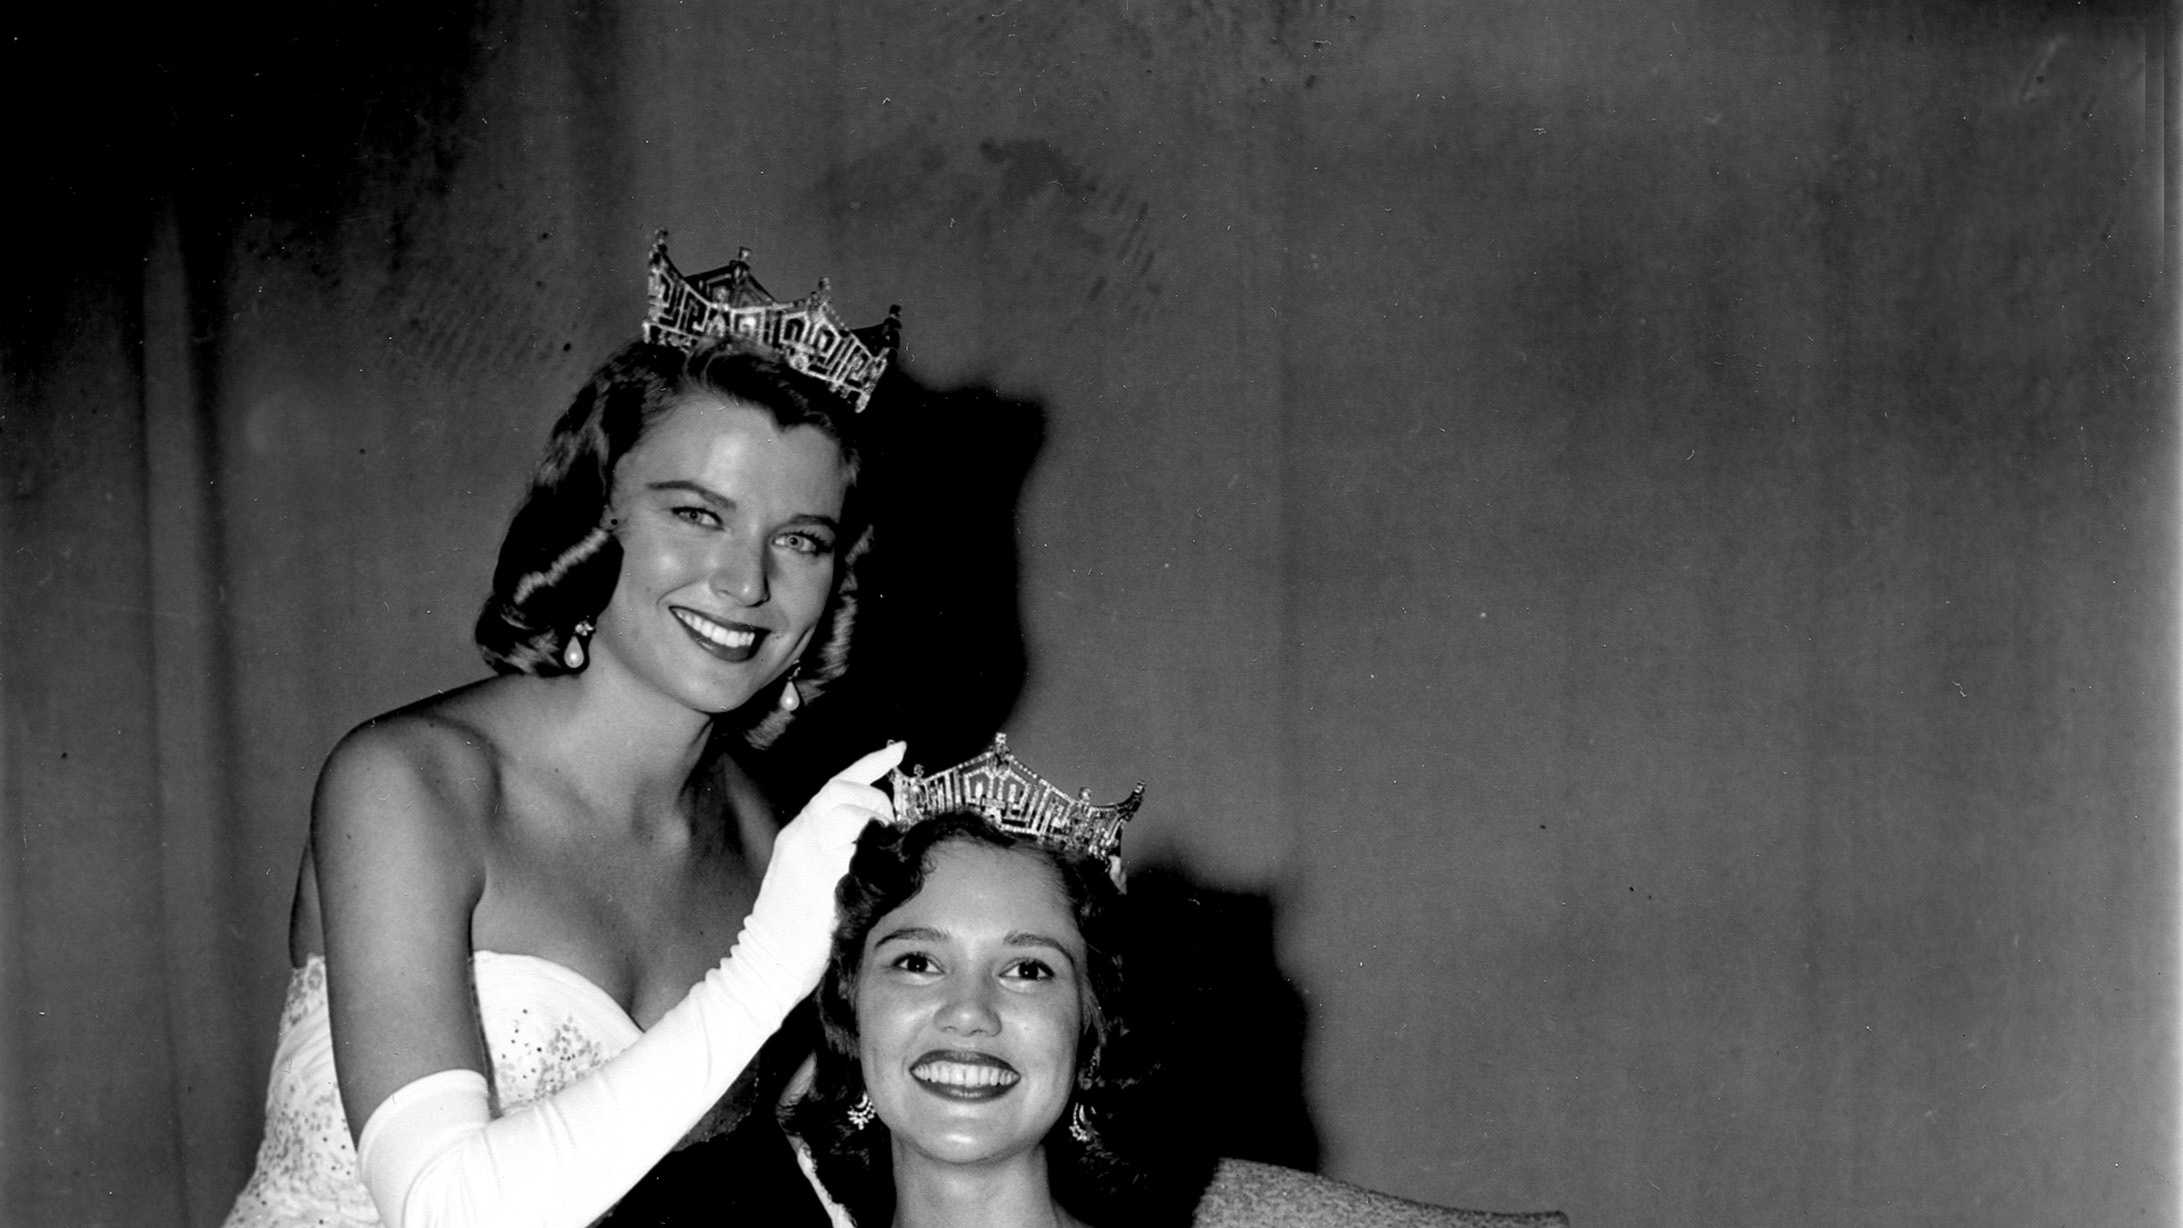 Miss America 1959, Mary Ann Mobley, of Brandon, Mississippi, is crowned by outgoing Miss America Marilyn Elaine Van Derbur at the annual Miss America Pageant in Atlantic City, N.J., on Sept. 6, 1958.